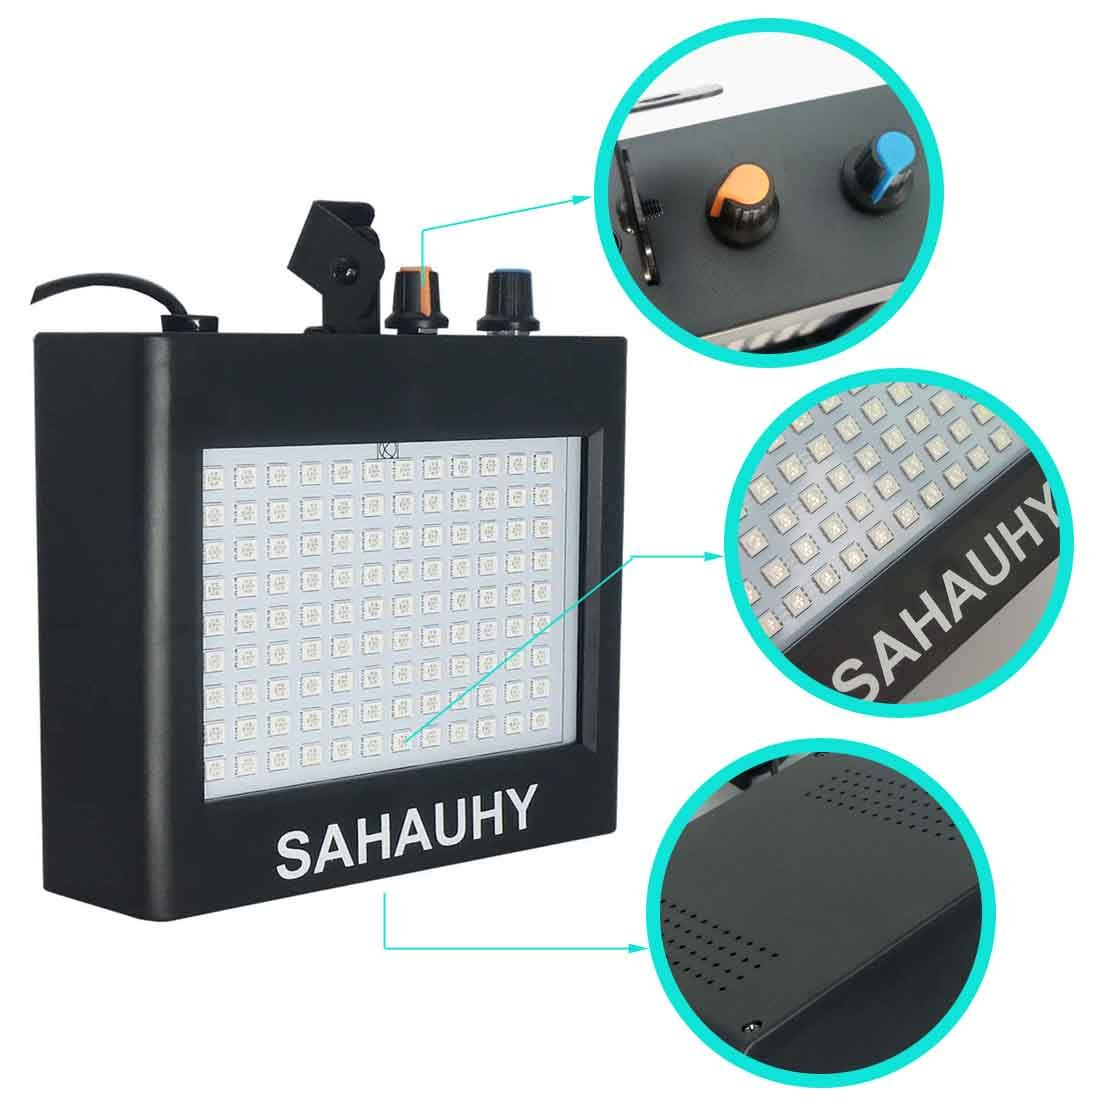 Strobe Lights,SAHAUHY 25W 108 LEDs Super Bright Flash Stage Lighting with Remote Control(Black One)